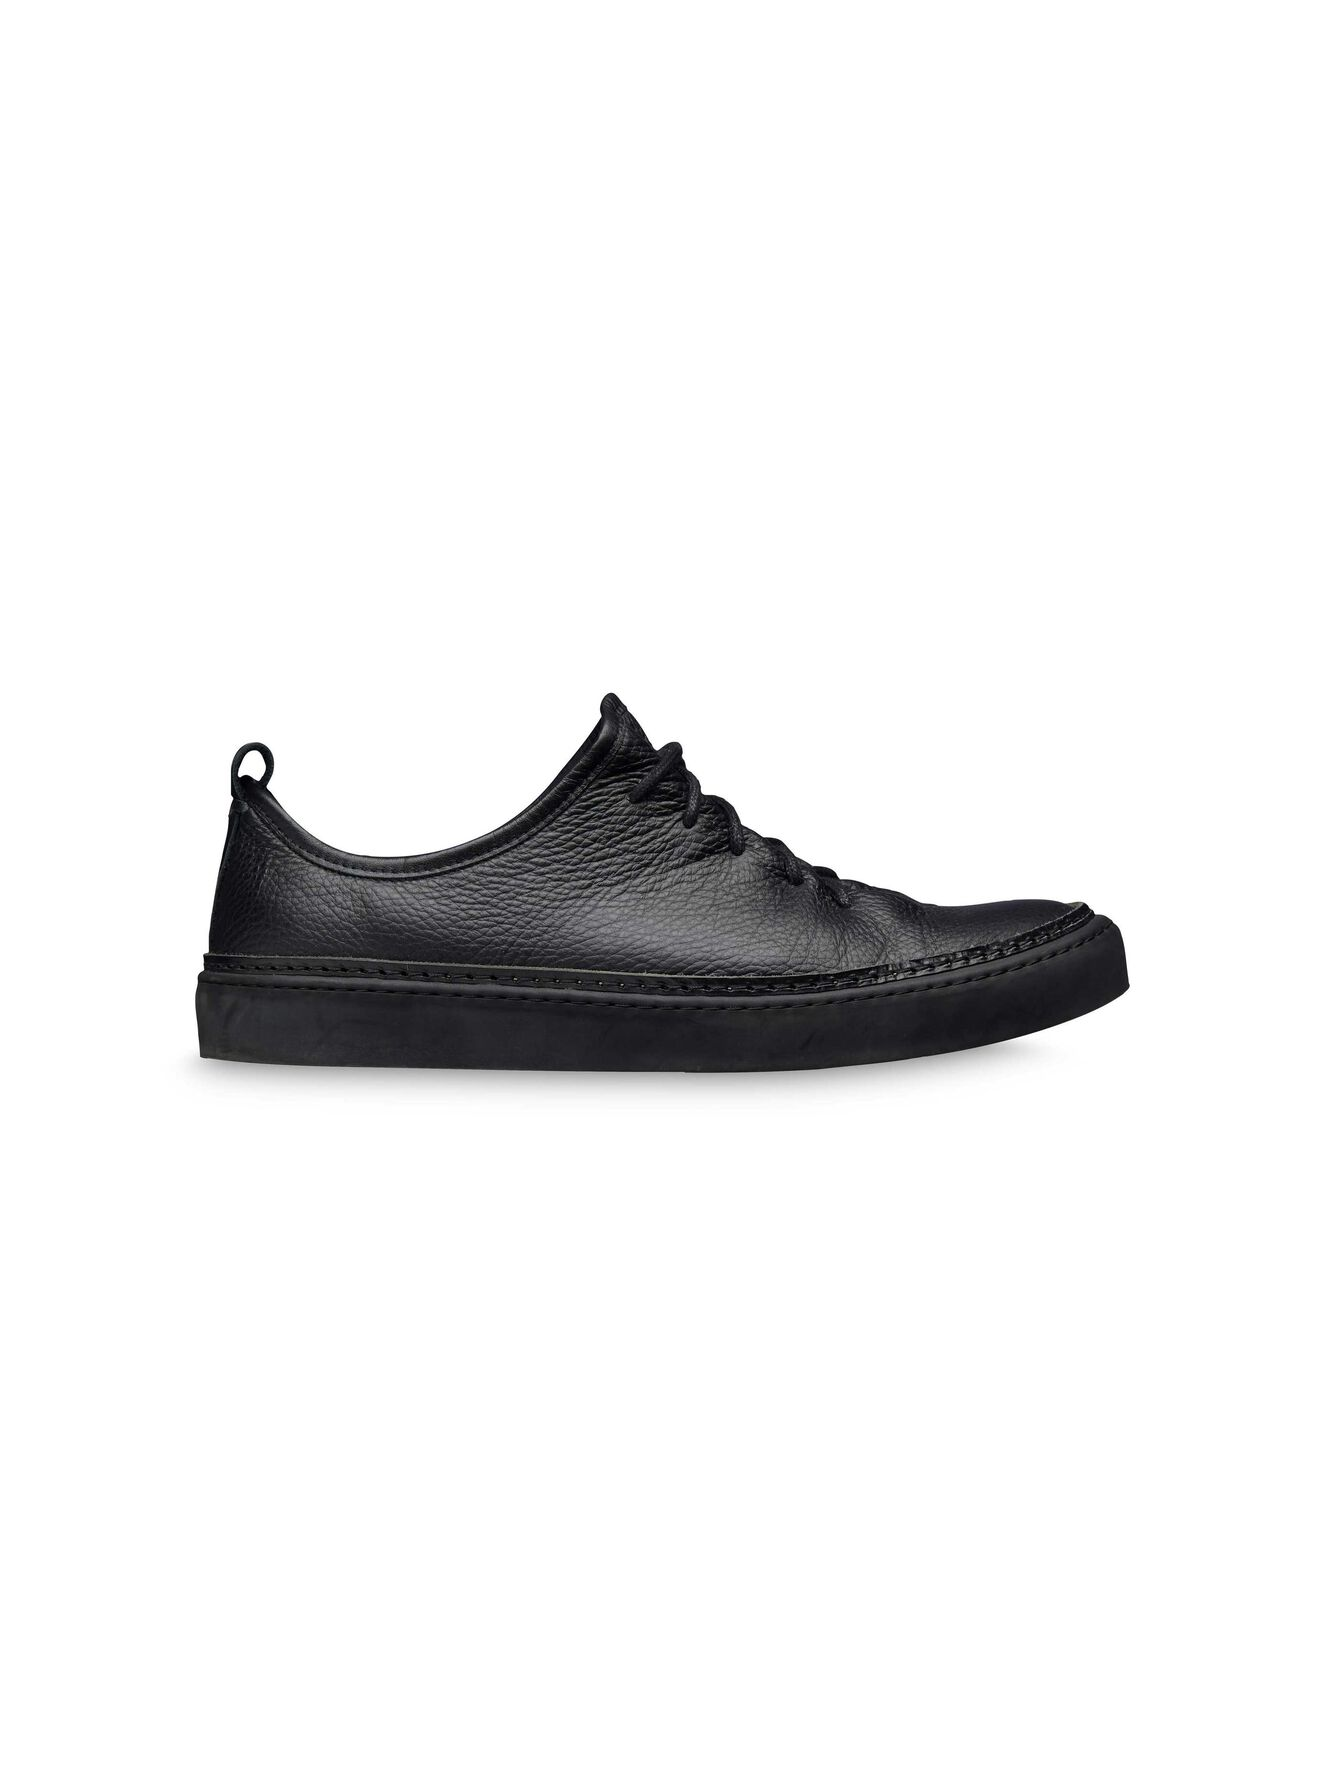 Manfred Sneaker in Black from Tiger of Sweden